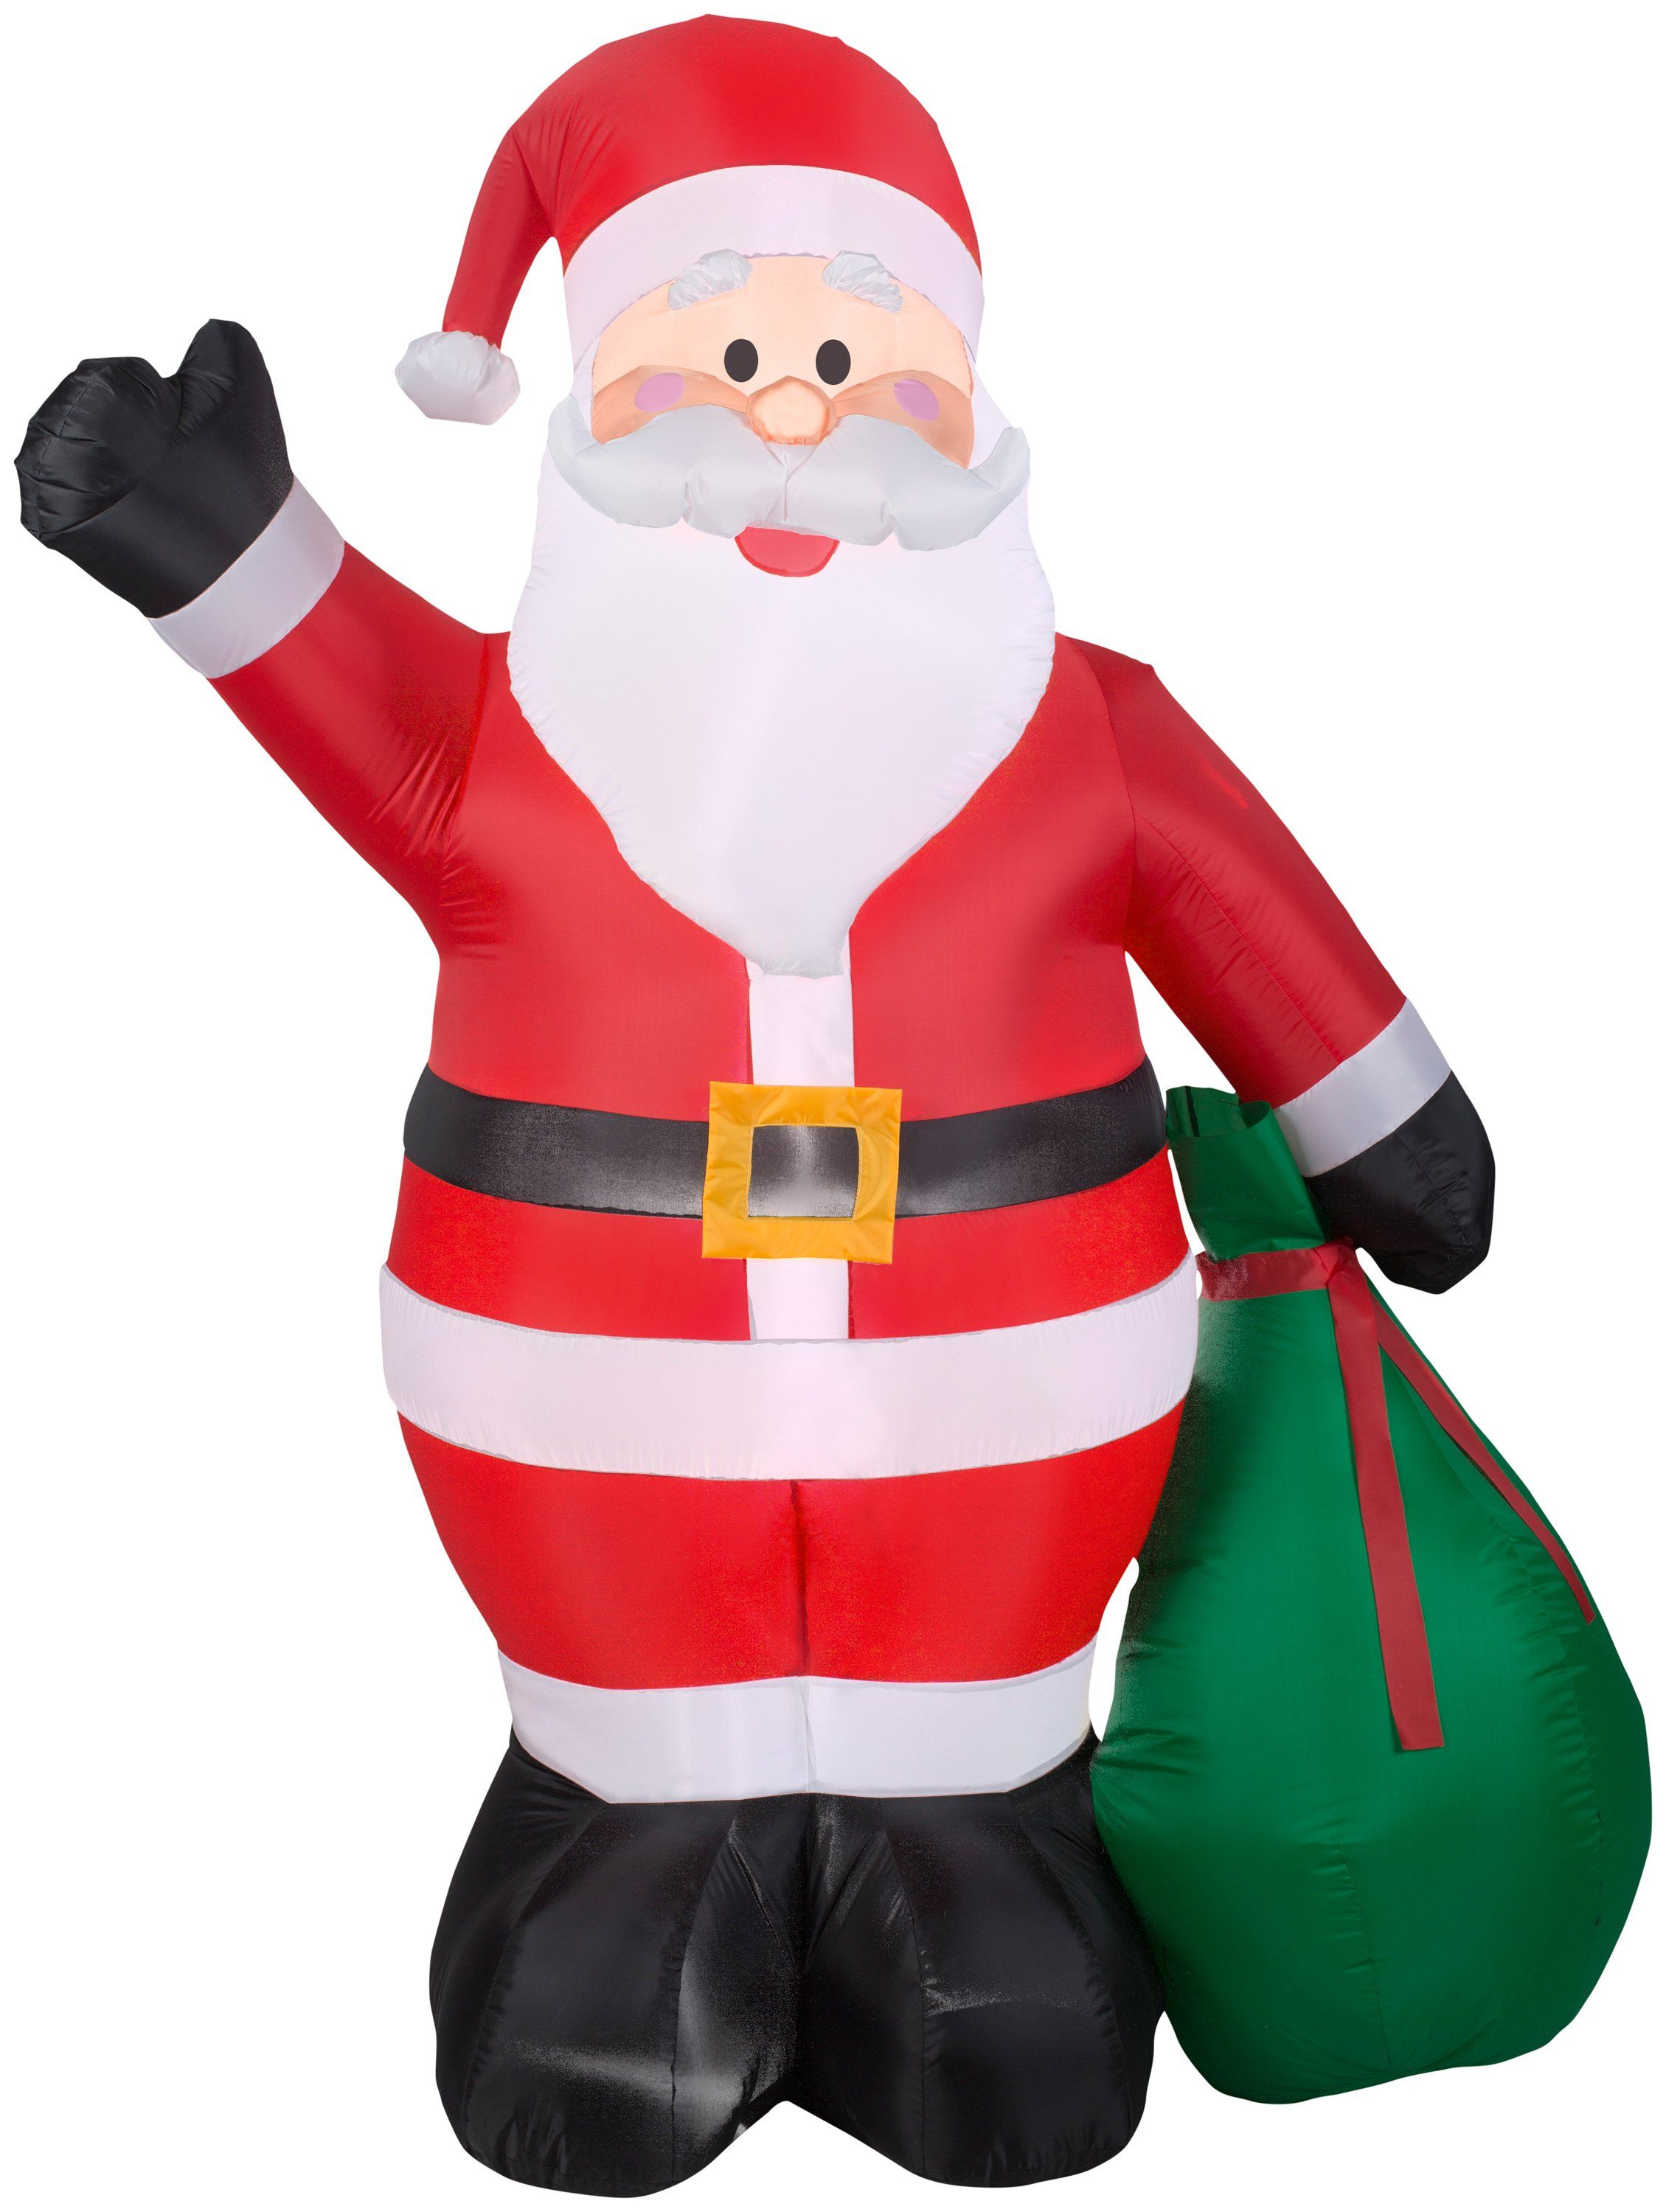 65u0027 Airblown Santa with Gift Sack Inflatable